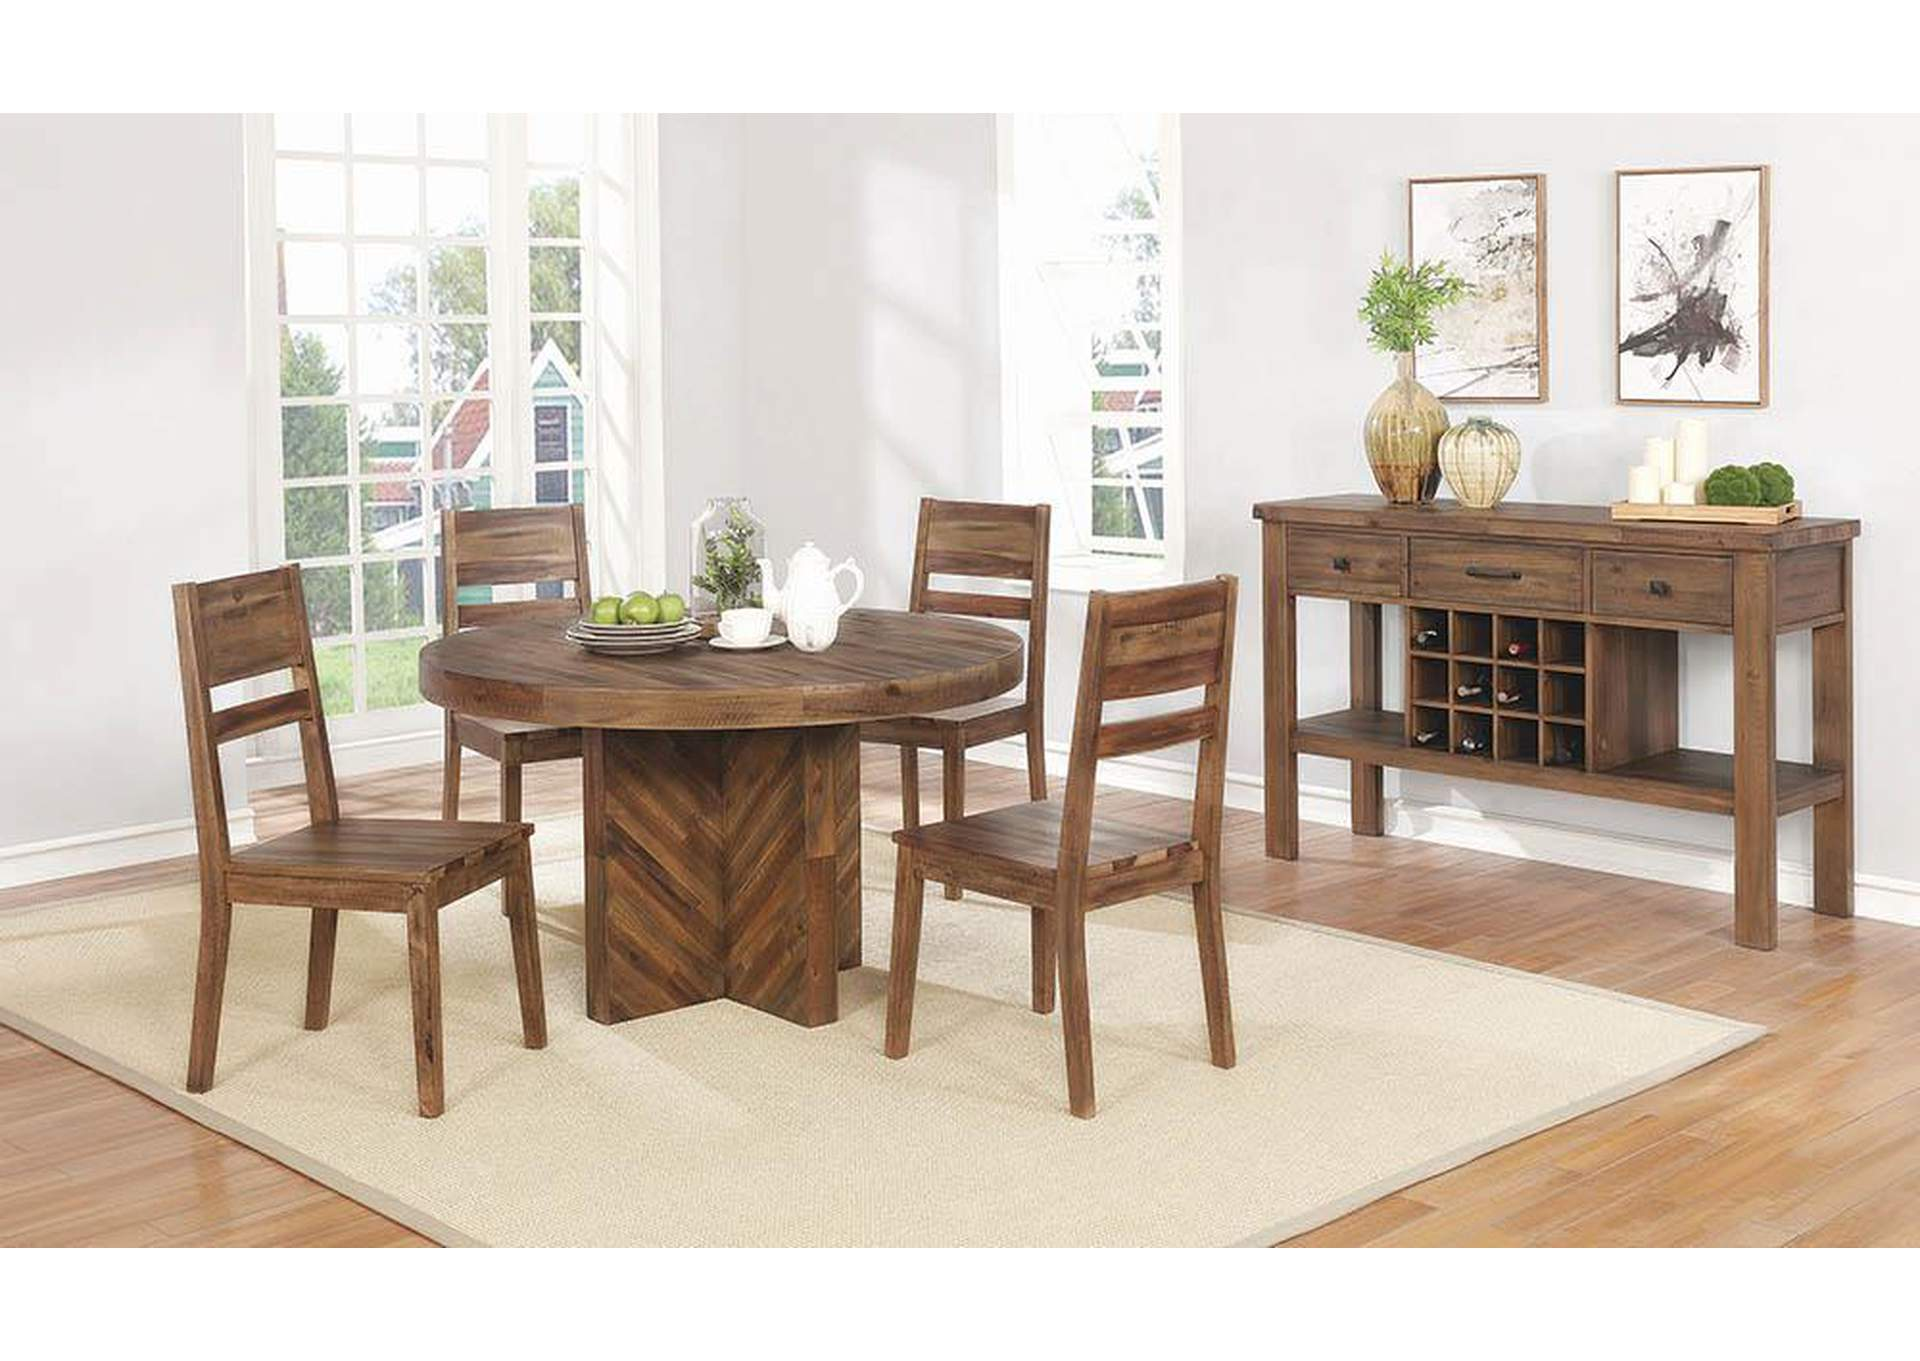 Tucson Rustic Varied Natural Round Dining Table,Coaster Furniture